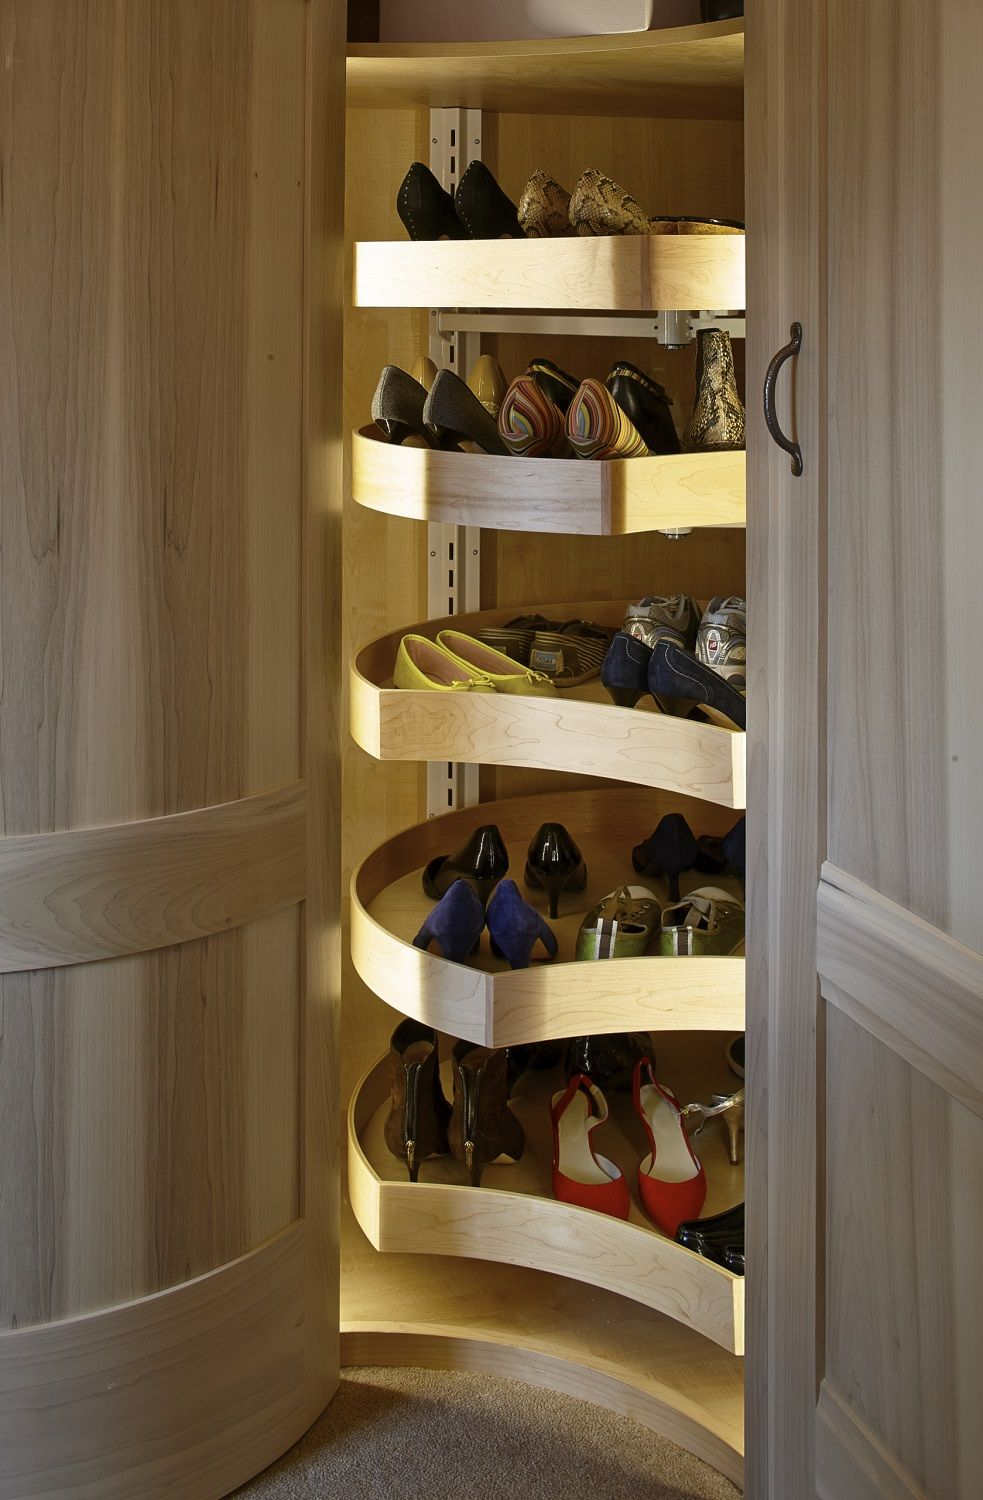 A Shoe Carousel In A Corner Unit In A Walk In Wardrobe. Perfect For Storing